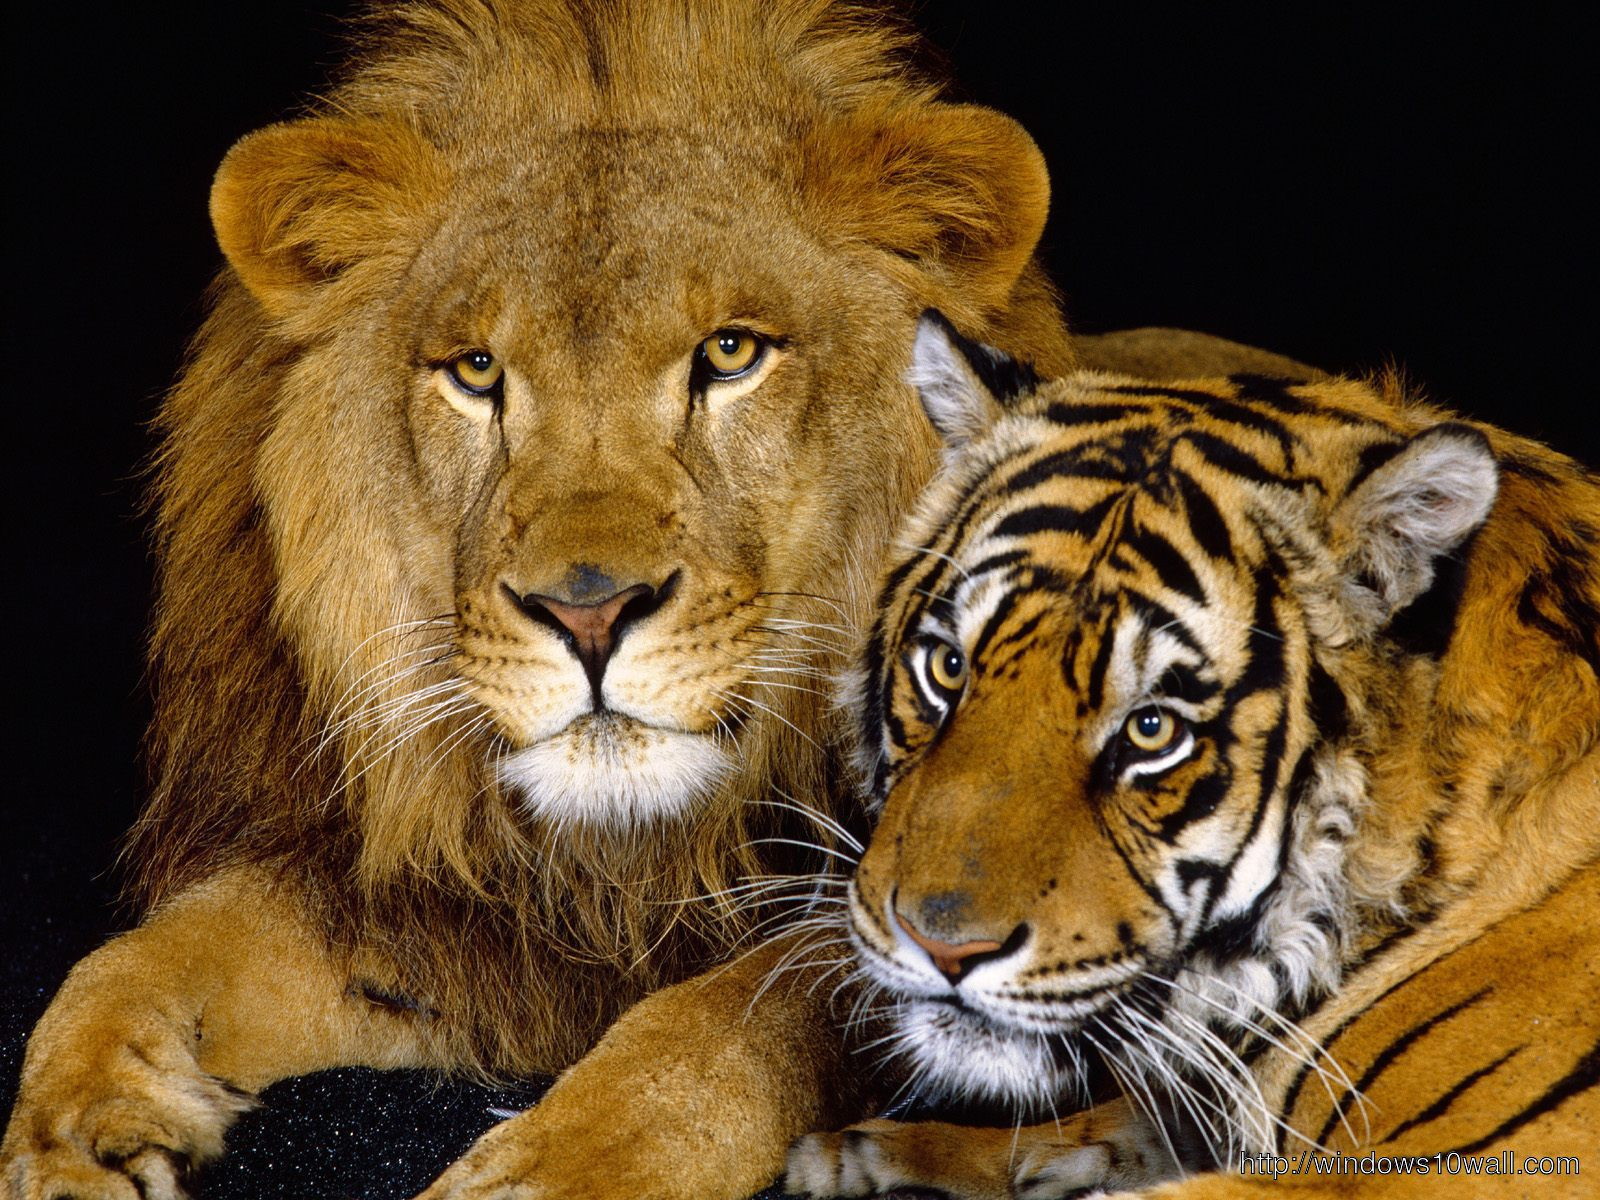 animals-lion-and-tiger-wallpaper